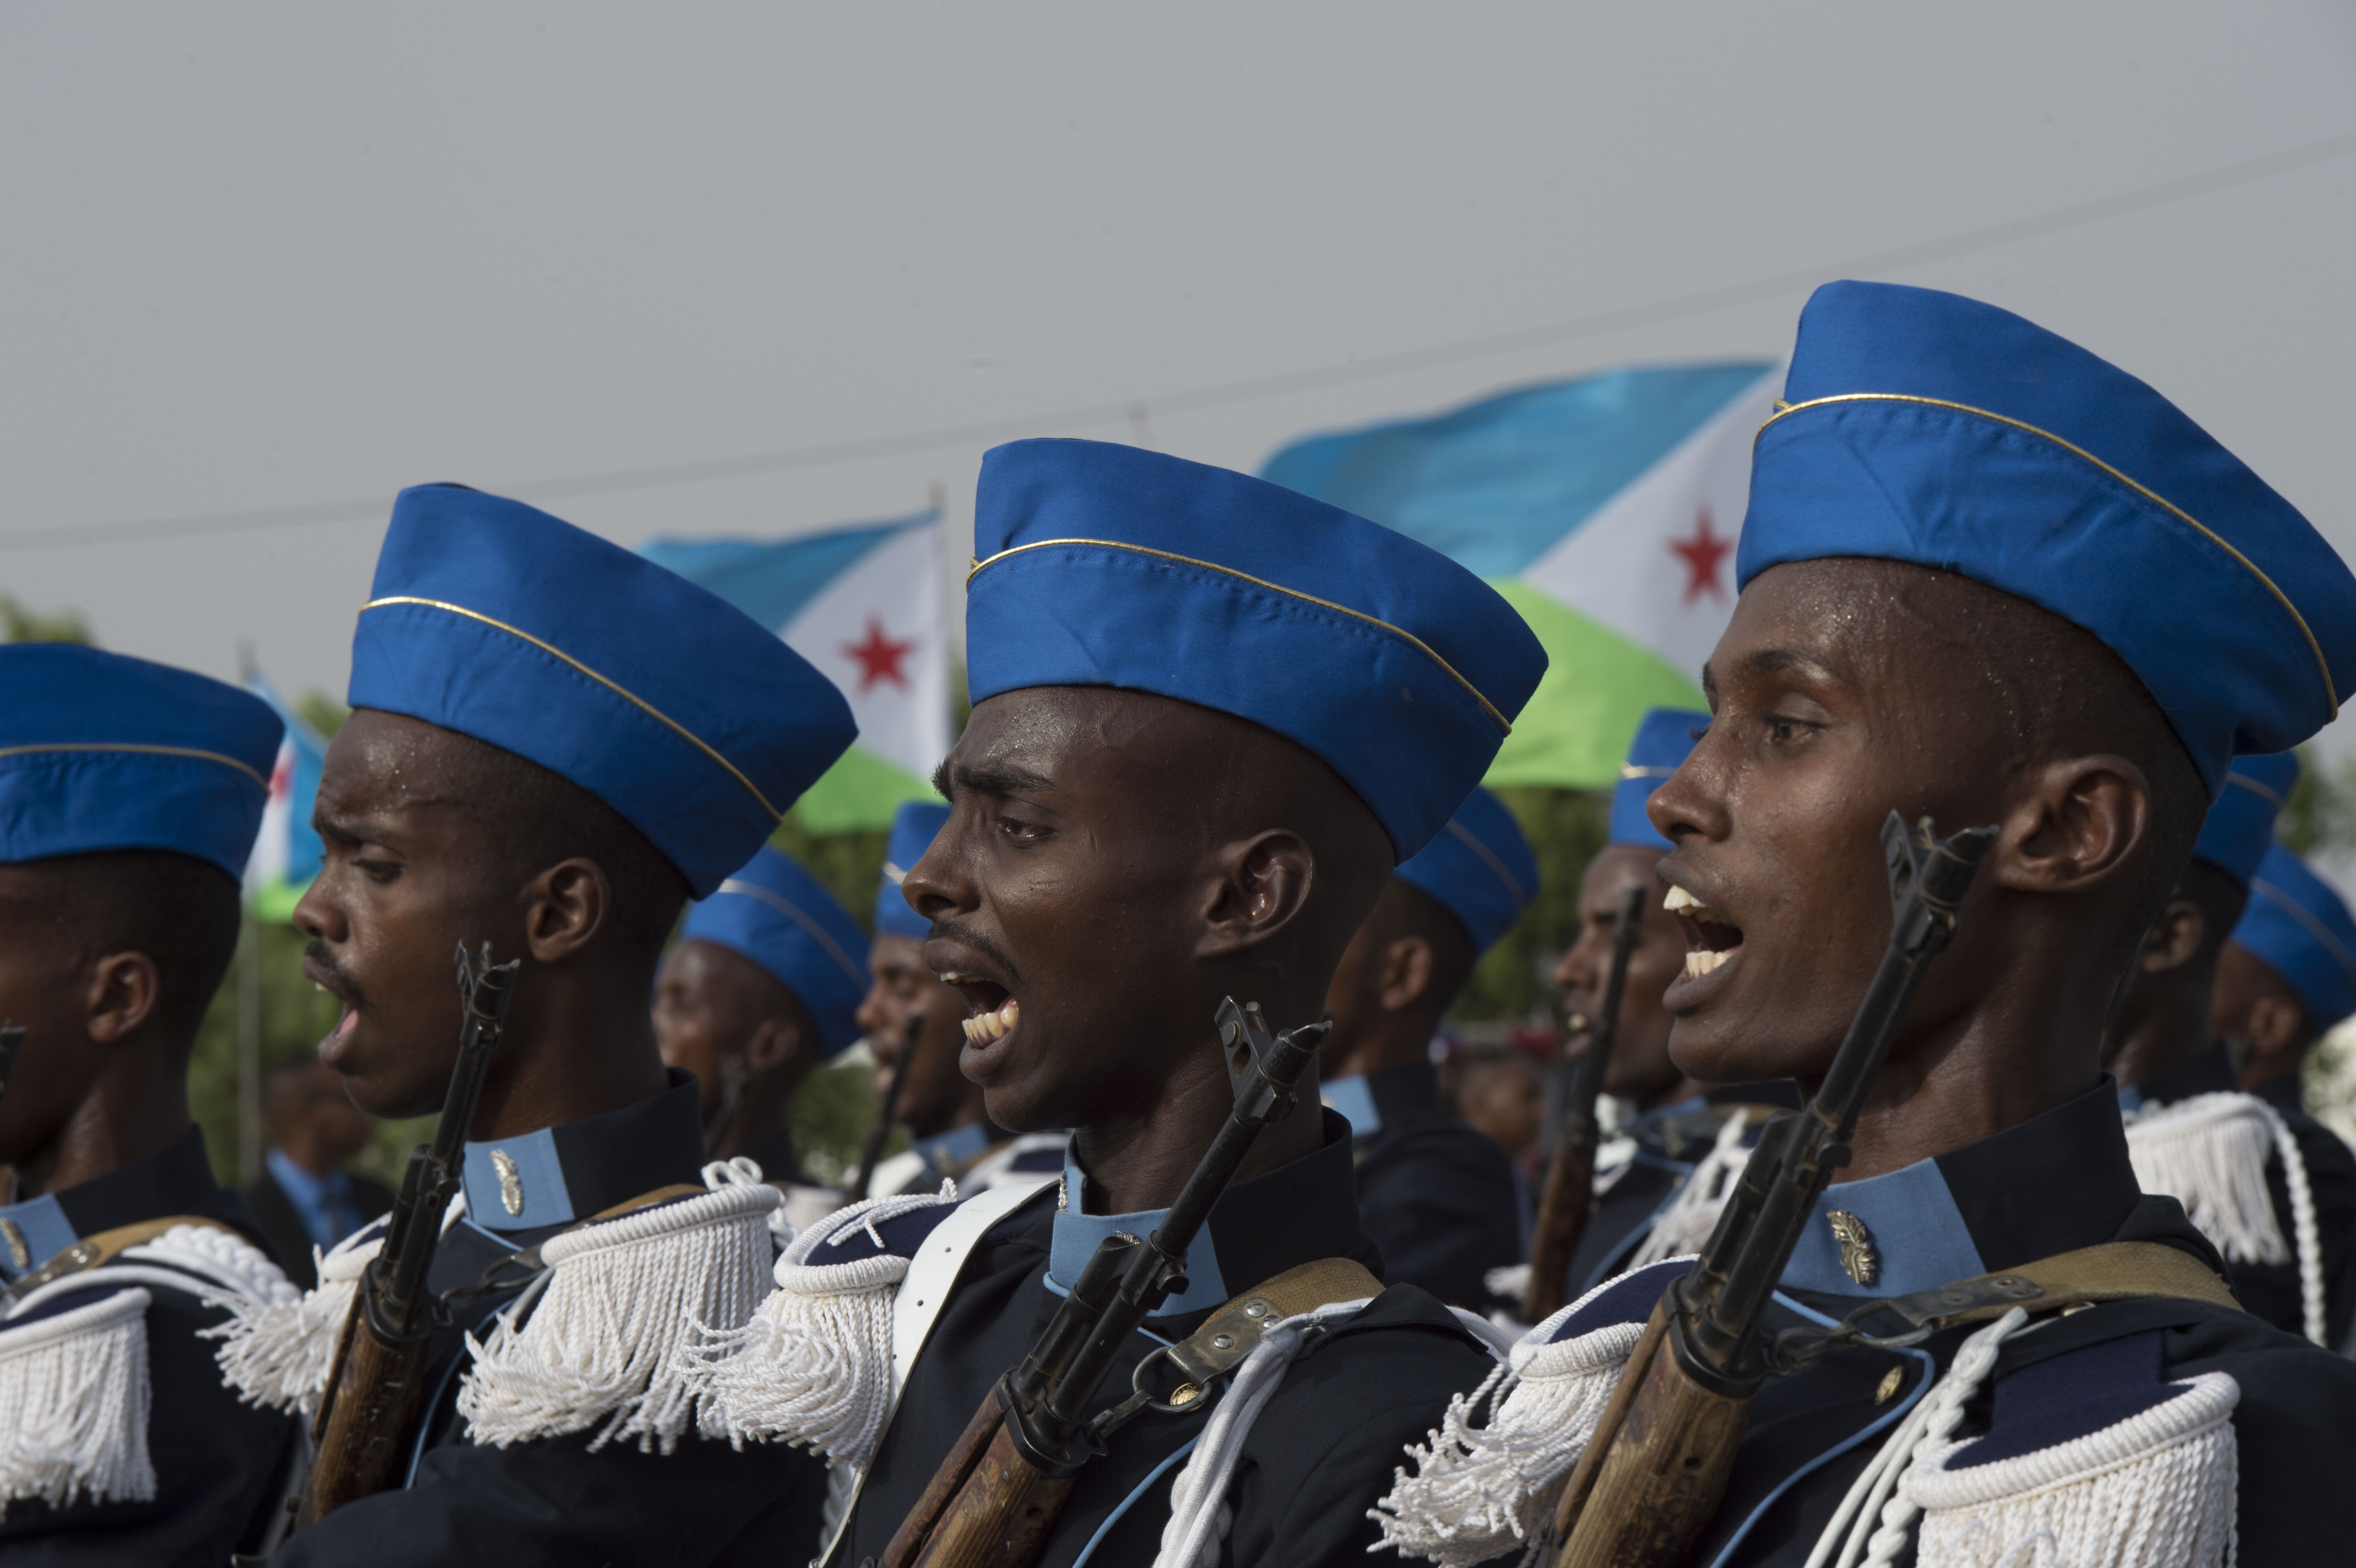 Members of the Djibouti Armed Forces shout cadences while marching during the Djibouti Independence Day parade June 27, 2016, at Djibouti. Today marked the 39th year since Djibouti declared its independence. (U.S. Air Force photo by Staff Sgt. Eric Summers Jr.)